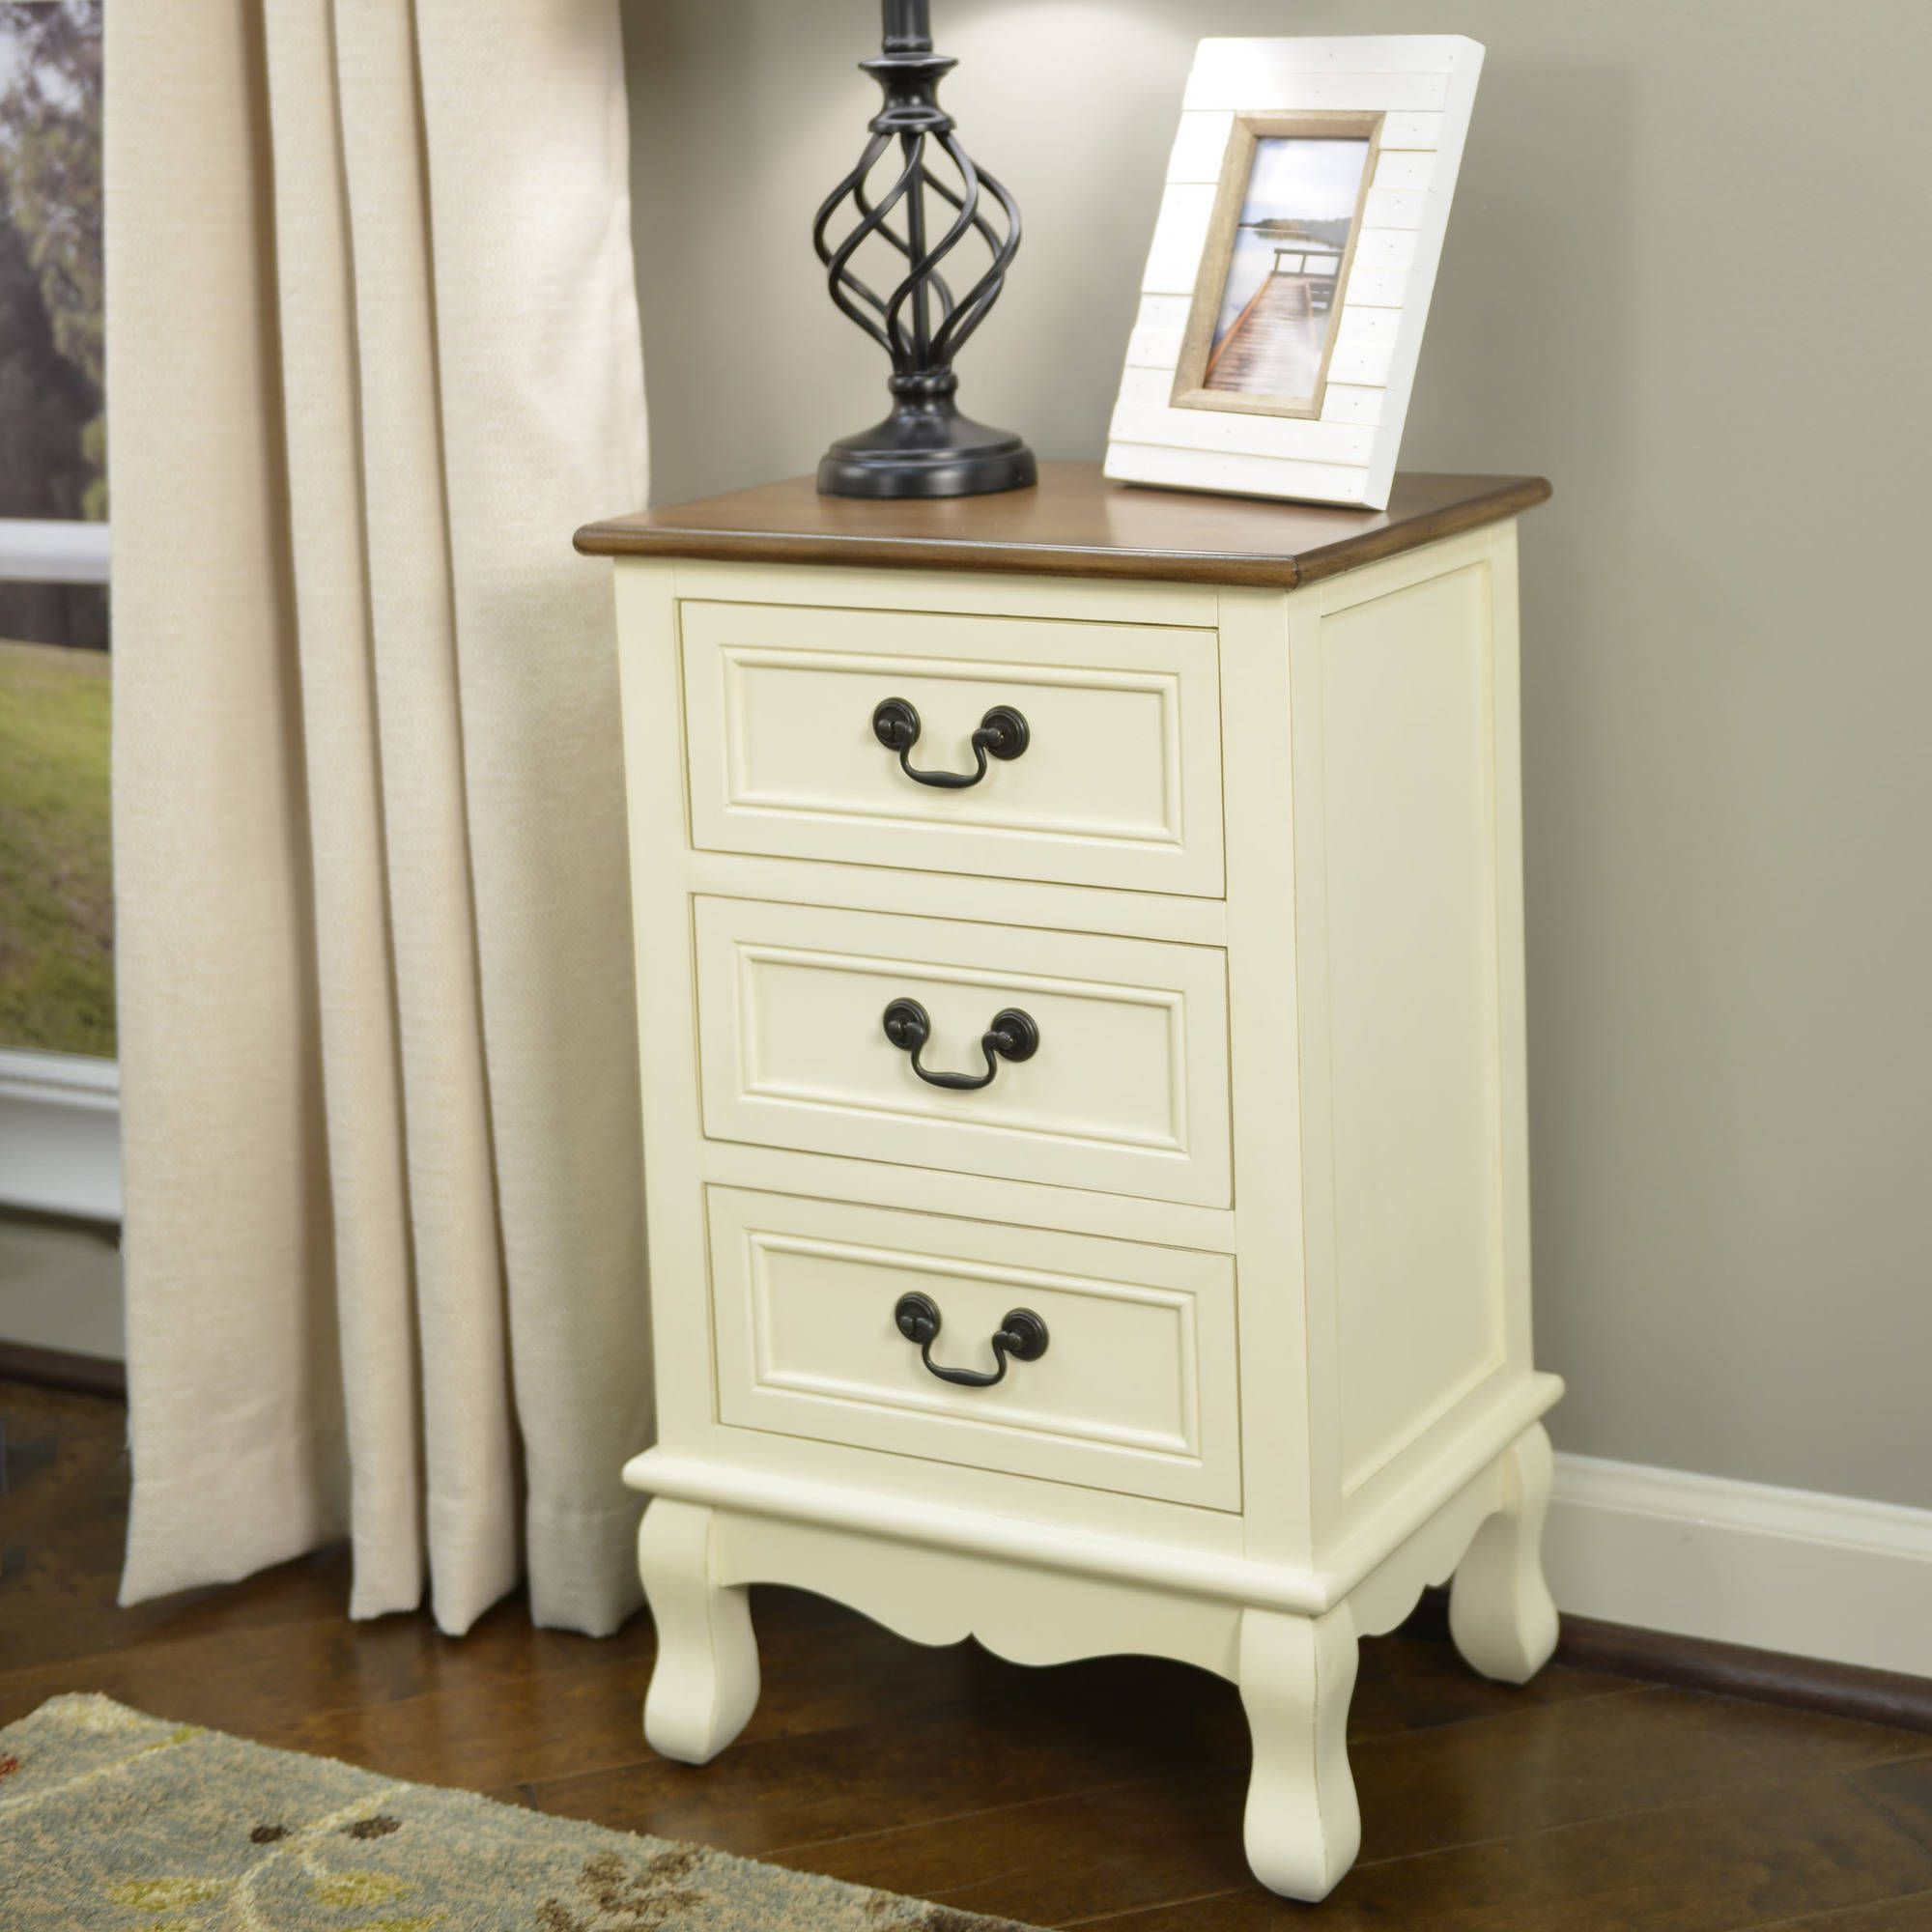 out contemporary nightstand kitchen drawer com dp dining iohomes homes silver inside end nilean amazon table